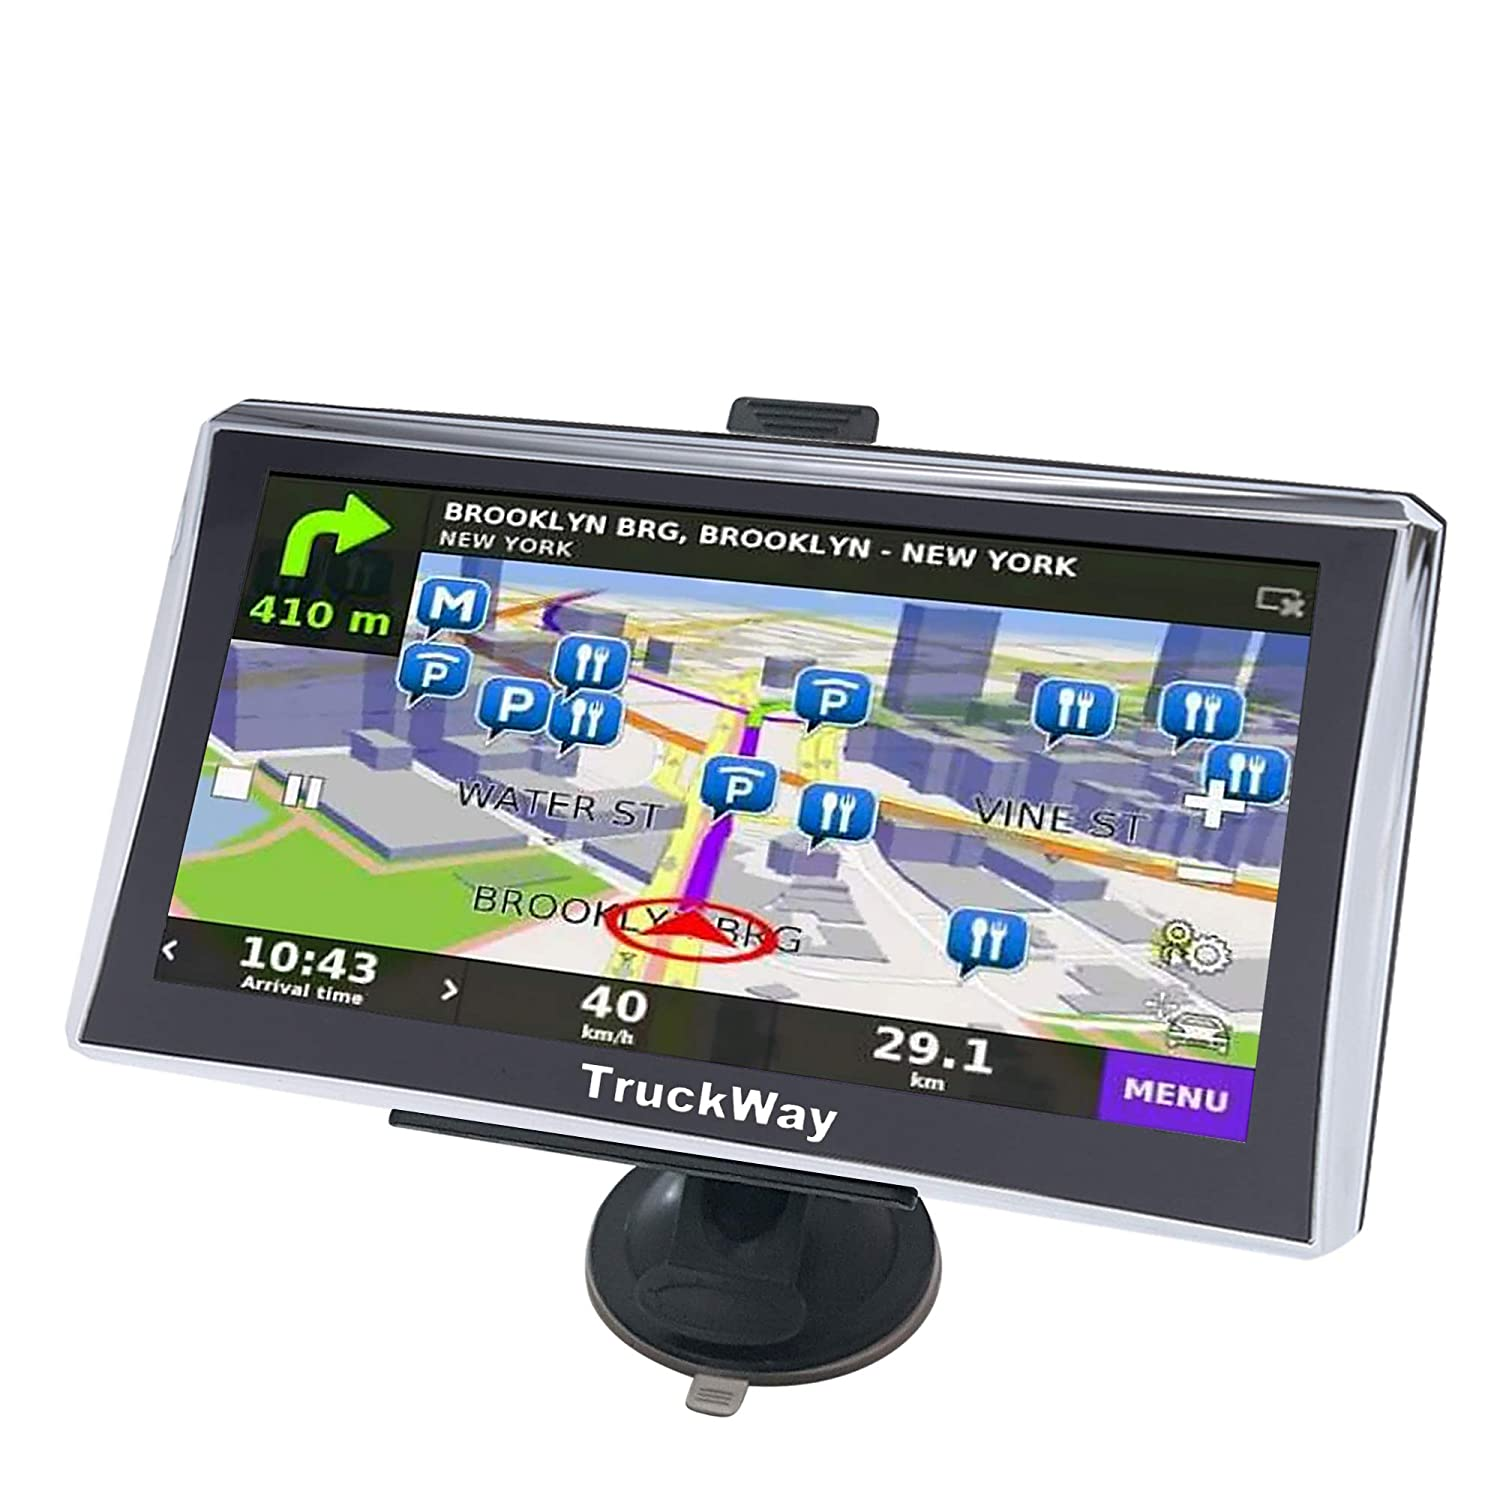 TruckWay GPS - Pro Series Model 720 - Truck GPS 7' Inch Truck Drivers Navigation Lifetime North America Maps (USA + Canada) 3D & 2D Maps, Touch Screen, Turn Turn Directions Pro Series 720